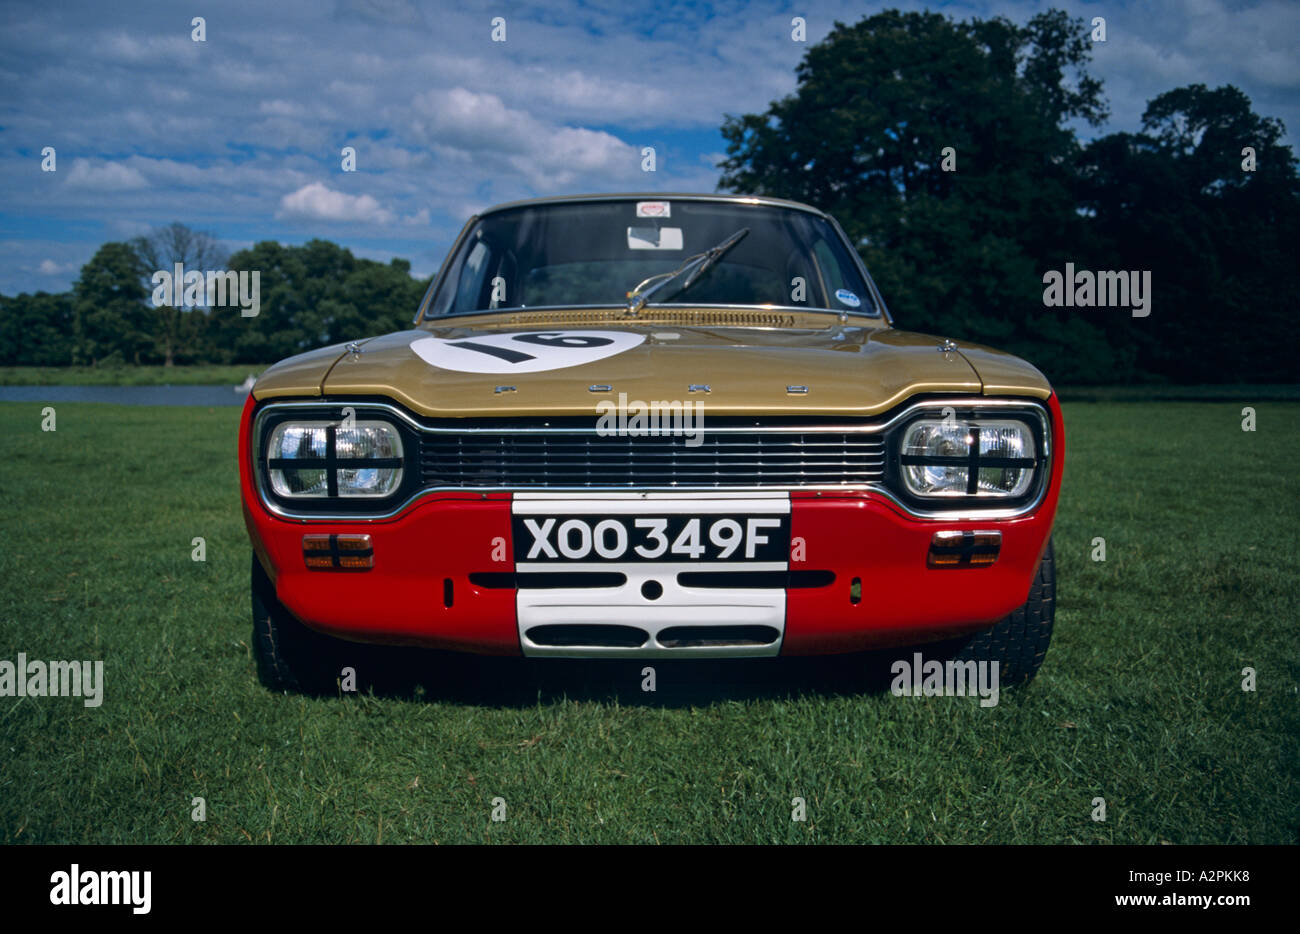 Best Buy Automotive >> Ford Escort Mk1 Twin Cam 1600. Introduced January 1968 Stock Photo: 6042743 - Alamy